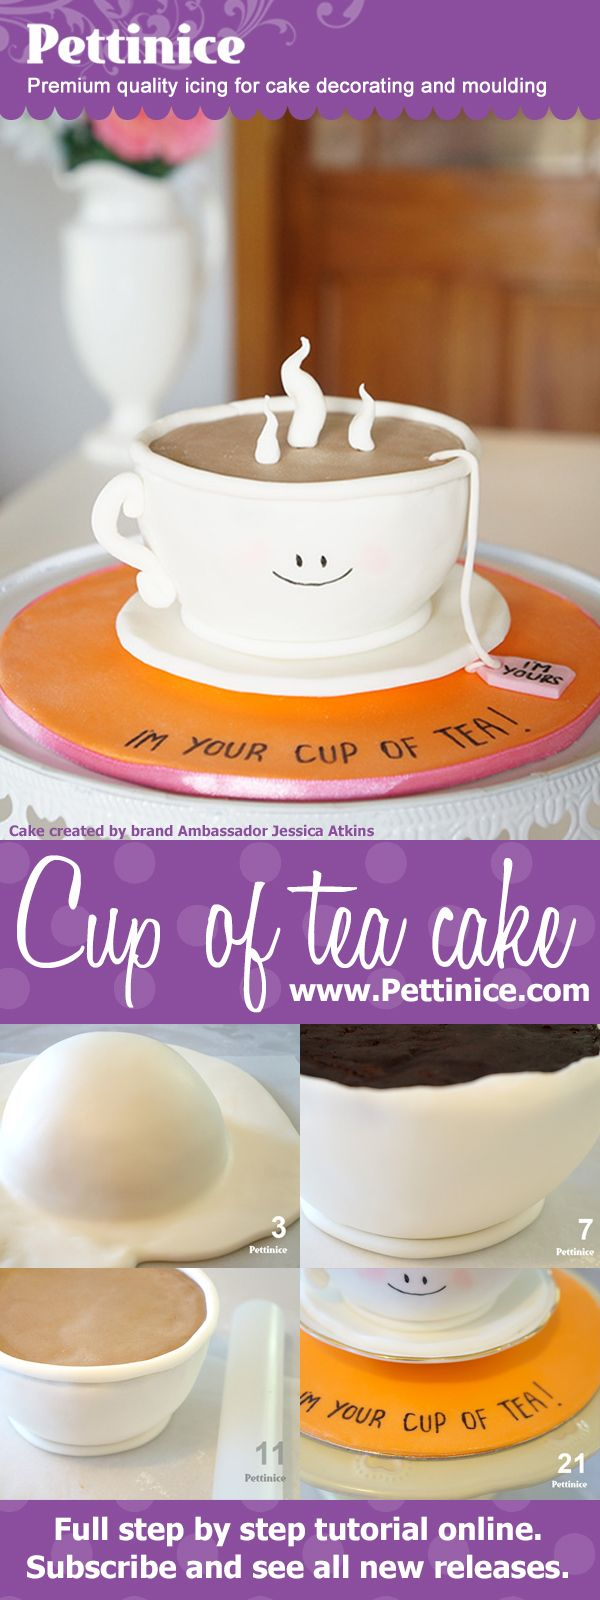 """FREE! Cake tutorial showing how to make a 6"""" round 3D cup of tea cake with Pettinice Brand Ambassador Jessica Atkins of Rosy Cakes. What a cute teacup!"""